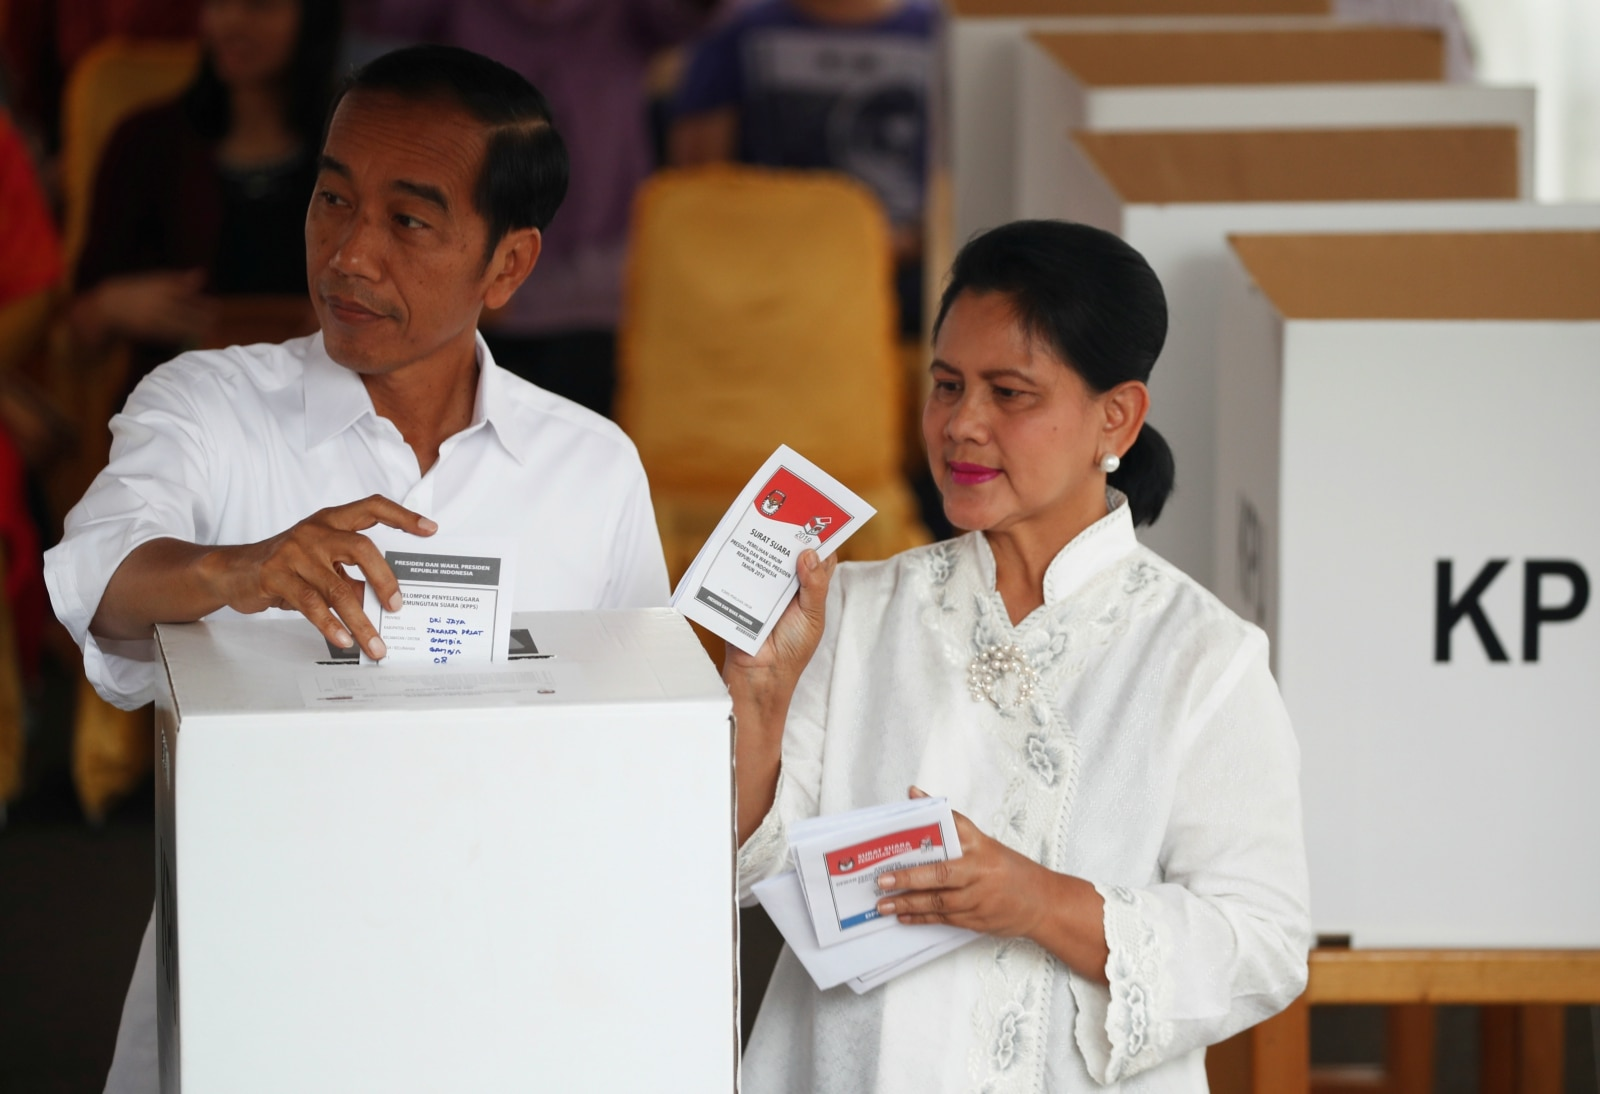 Indonesian President Joko Widodo and first lady Iriana Joko Widodo cast their ballots during elections in Jakarta, Indonesia April 17, 2019. REUTERS/Edgar Su